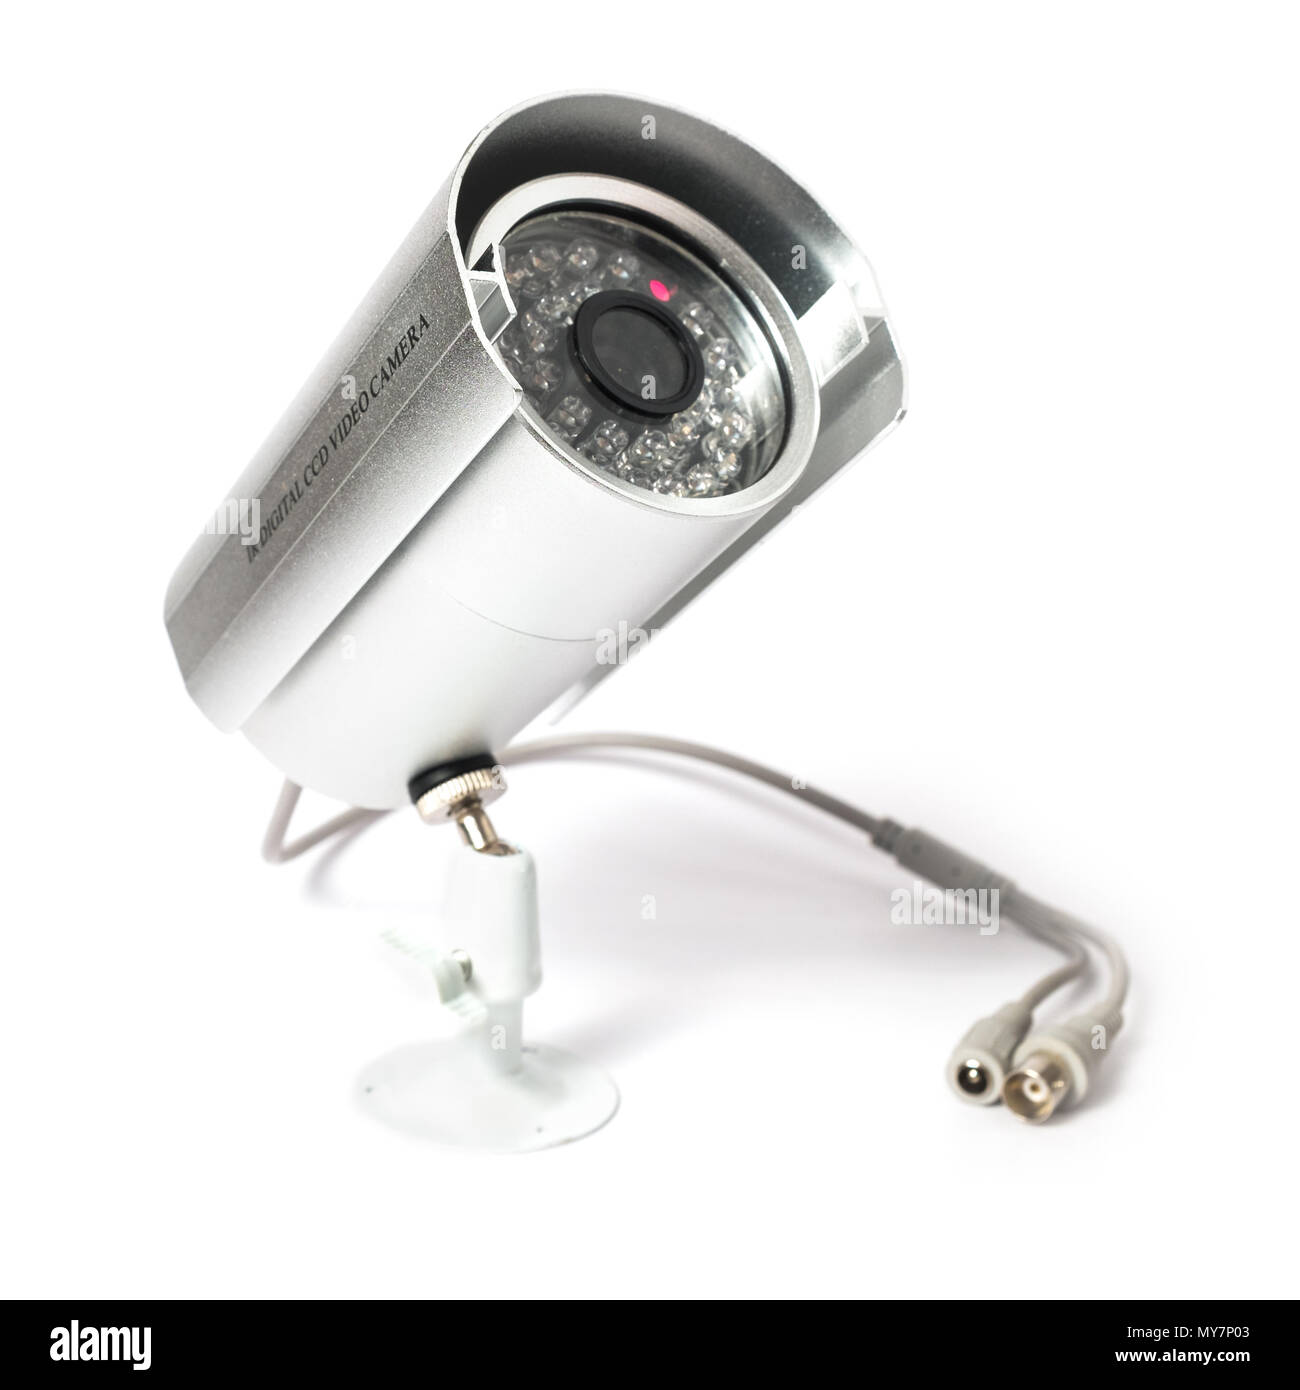 CCTV Camera of Surveillance isolate on white background - Stock Image